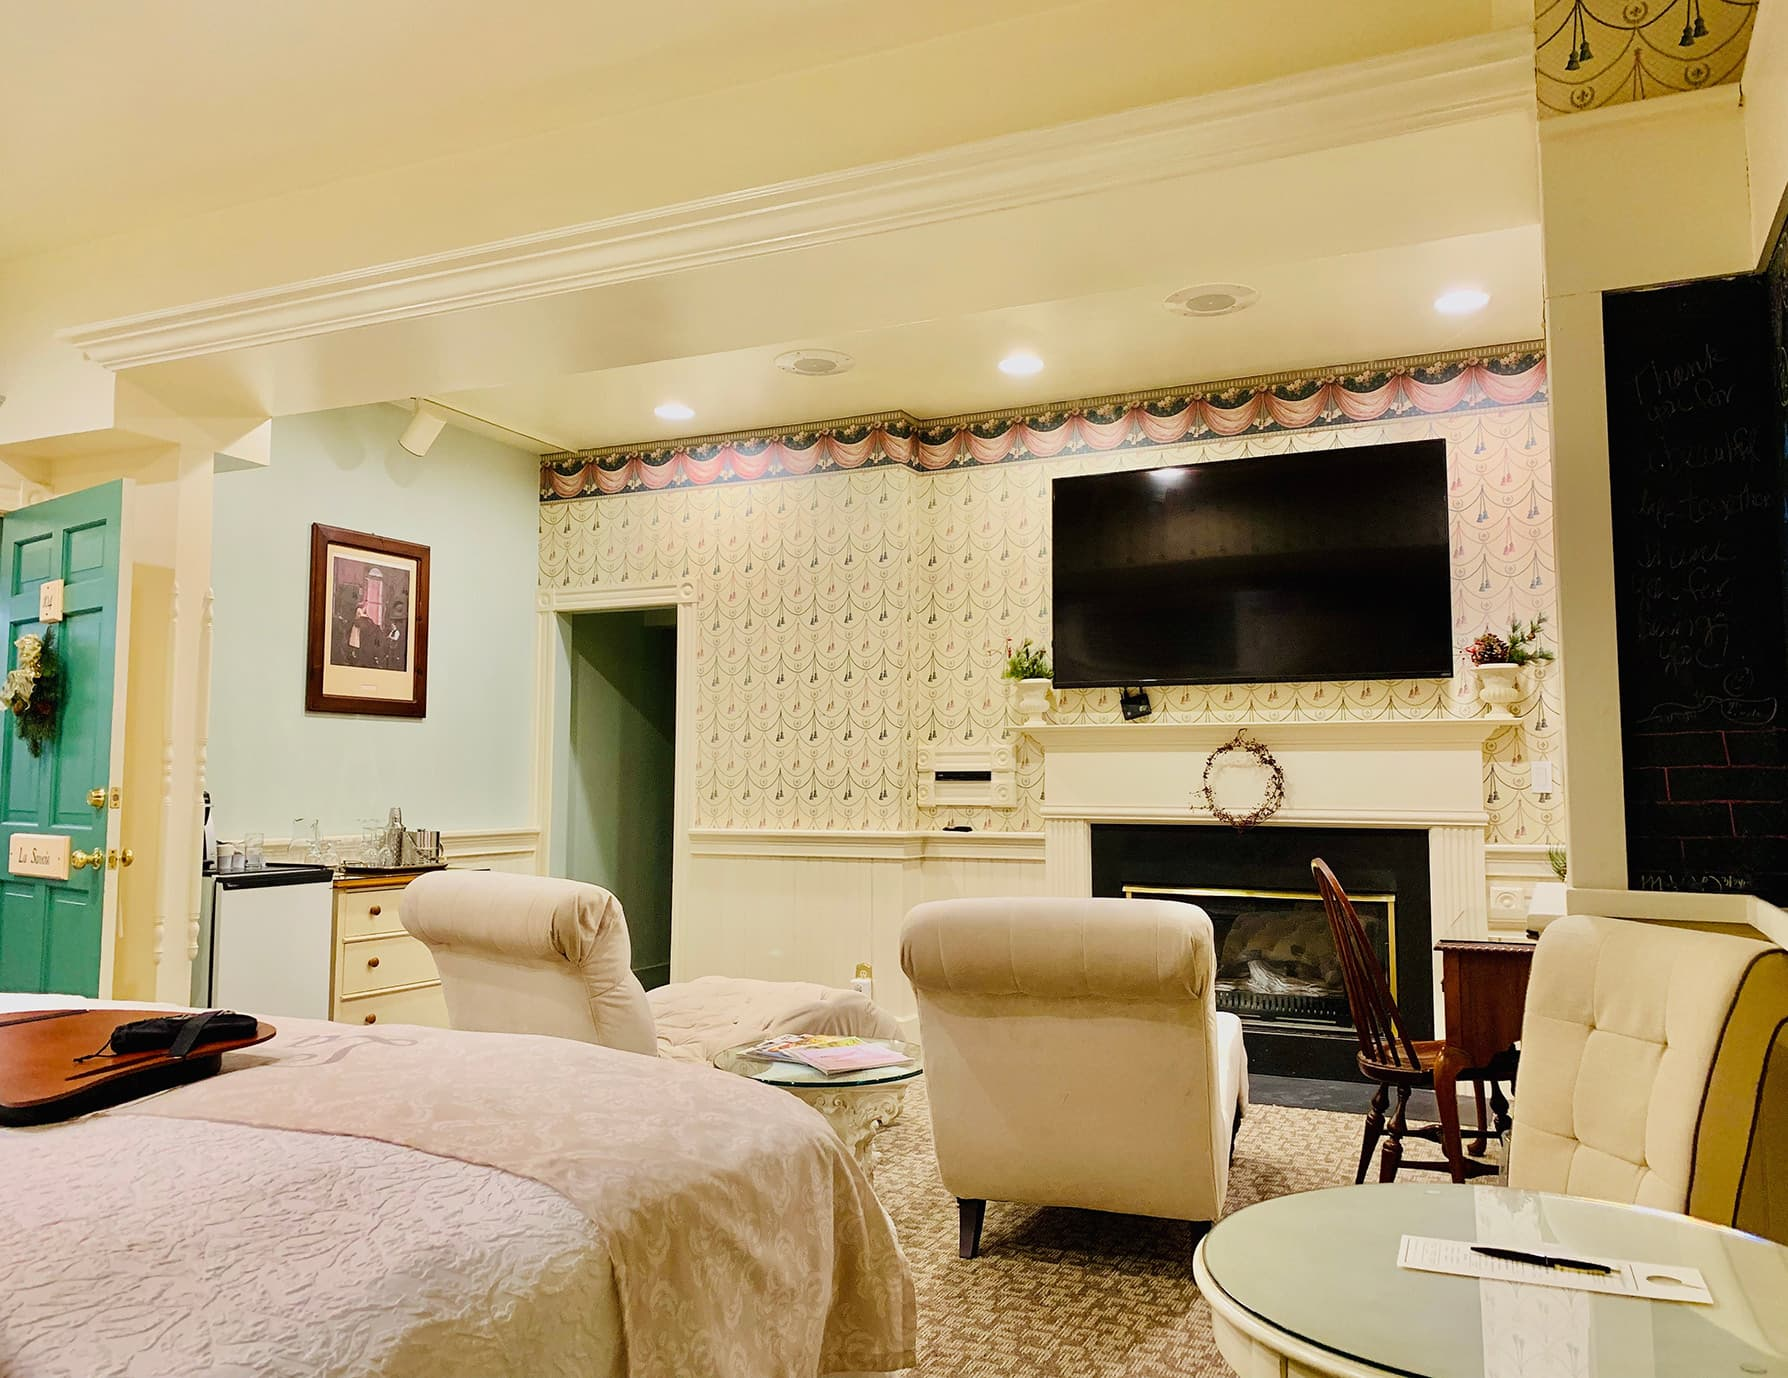 La Savoie Deluxe room sitting area with TV and fireplace - Lee, MA Boutique Hotel